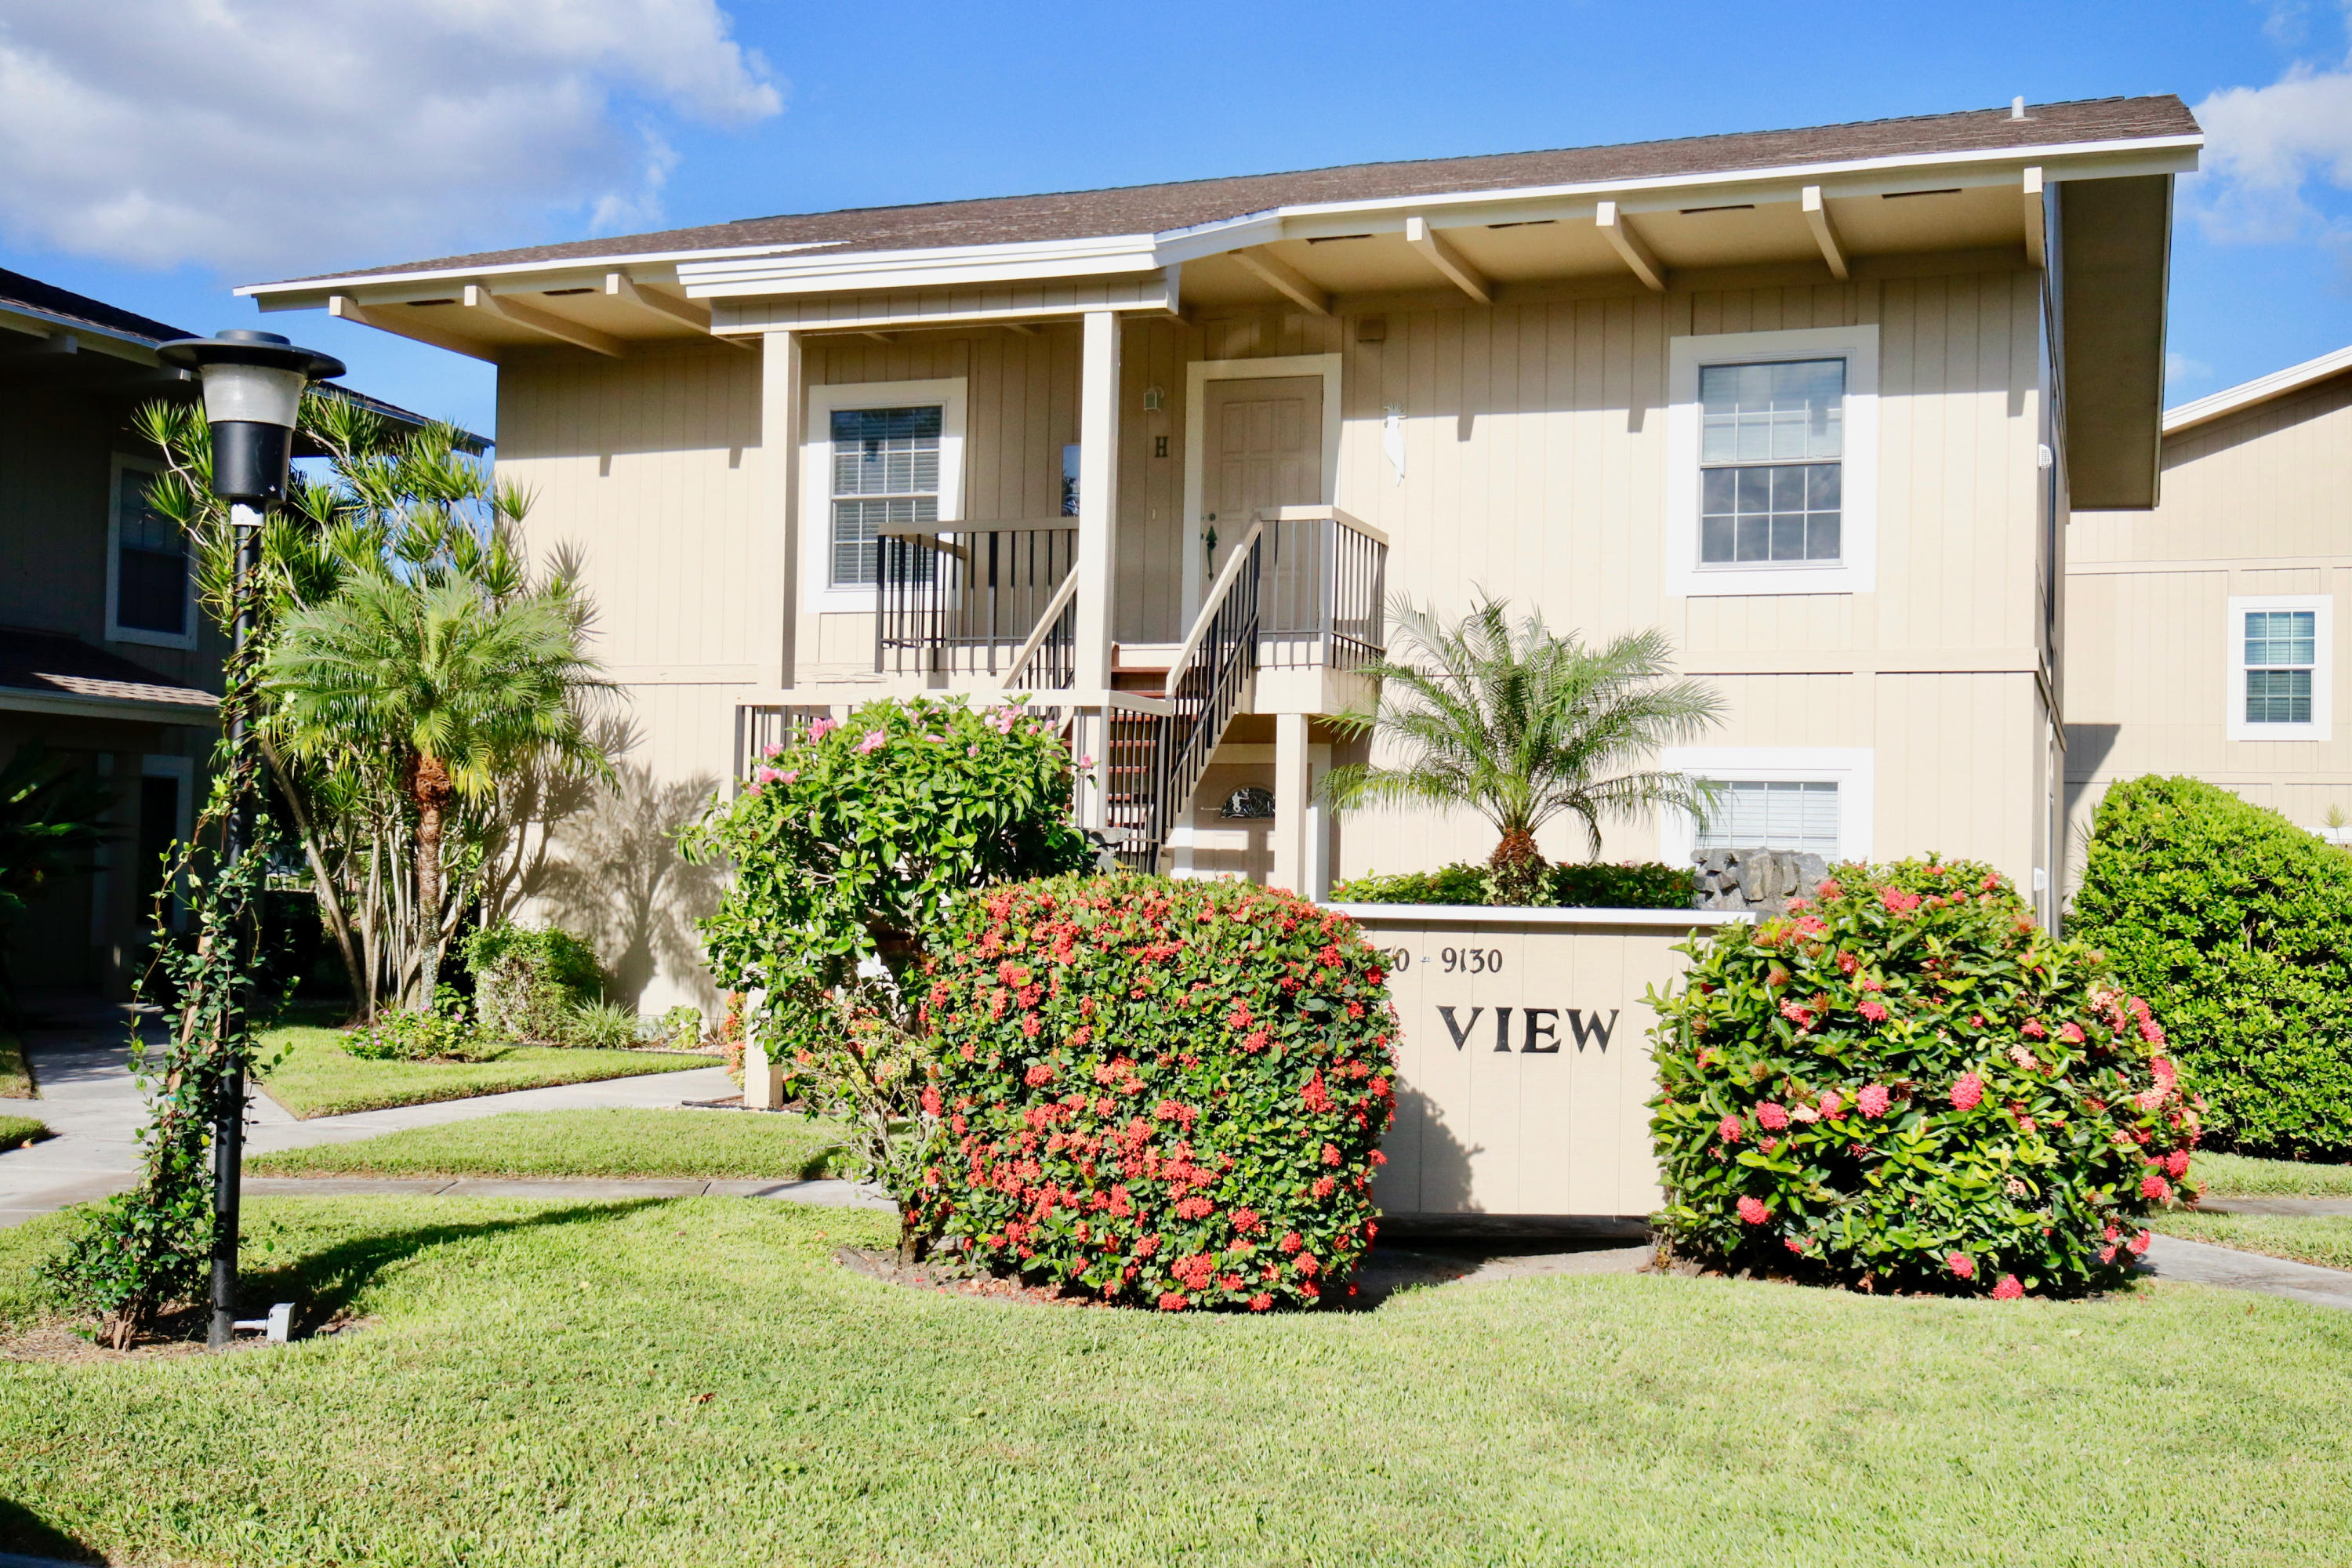 9140 SE Riverfront Terrace Seaview H  Tequesta FL 33469